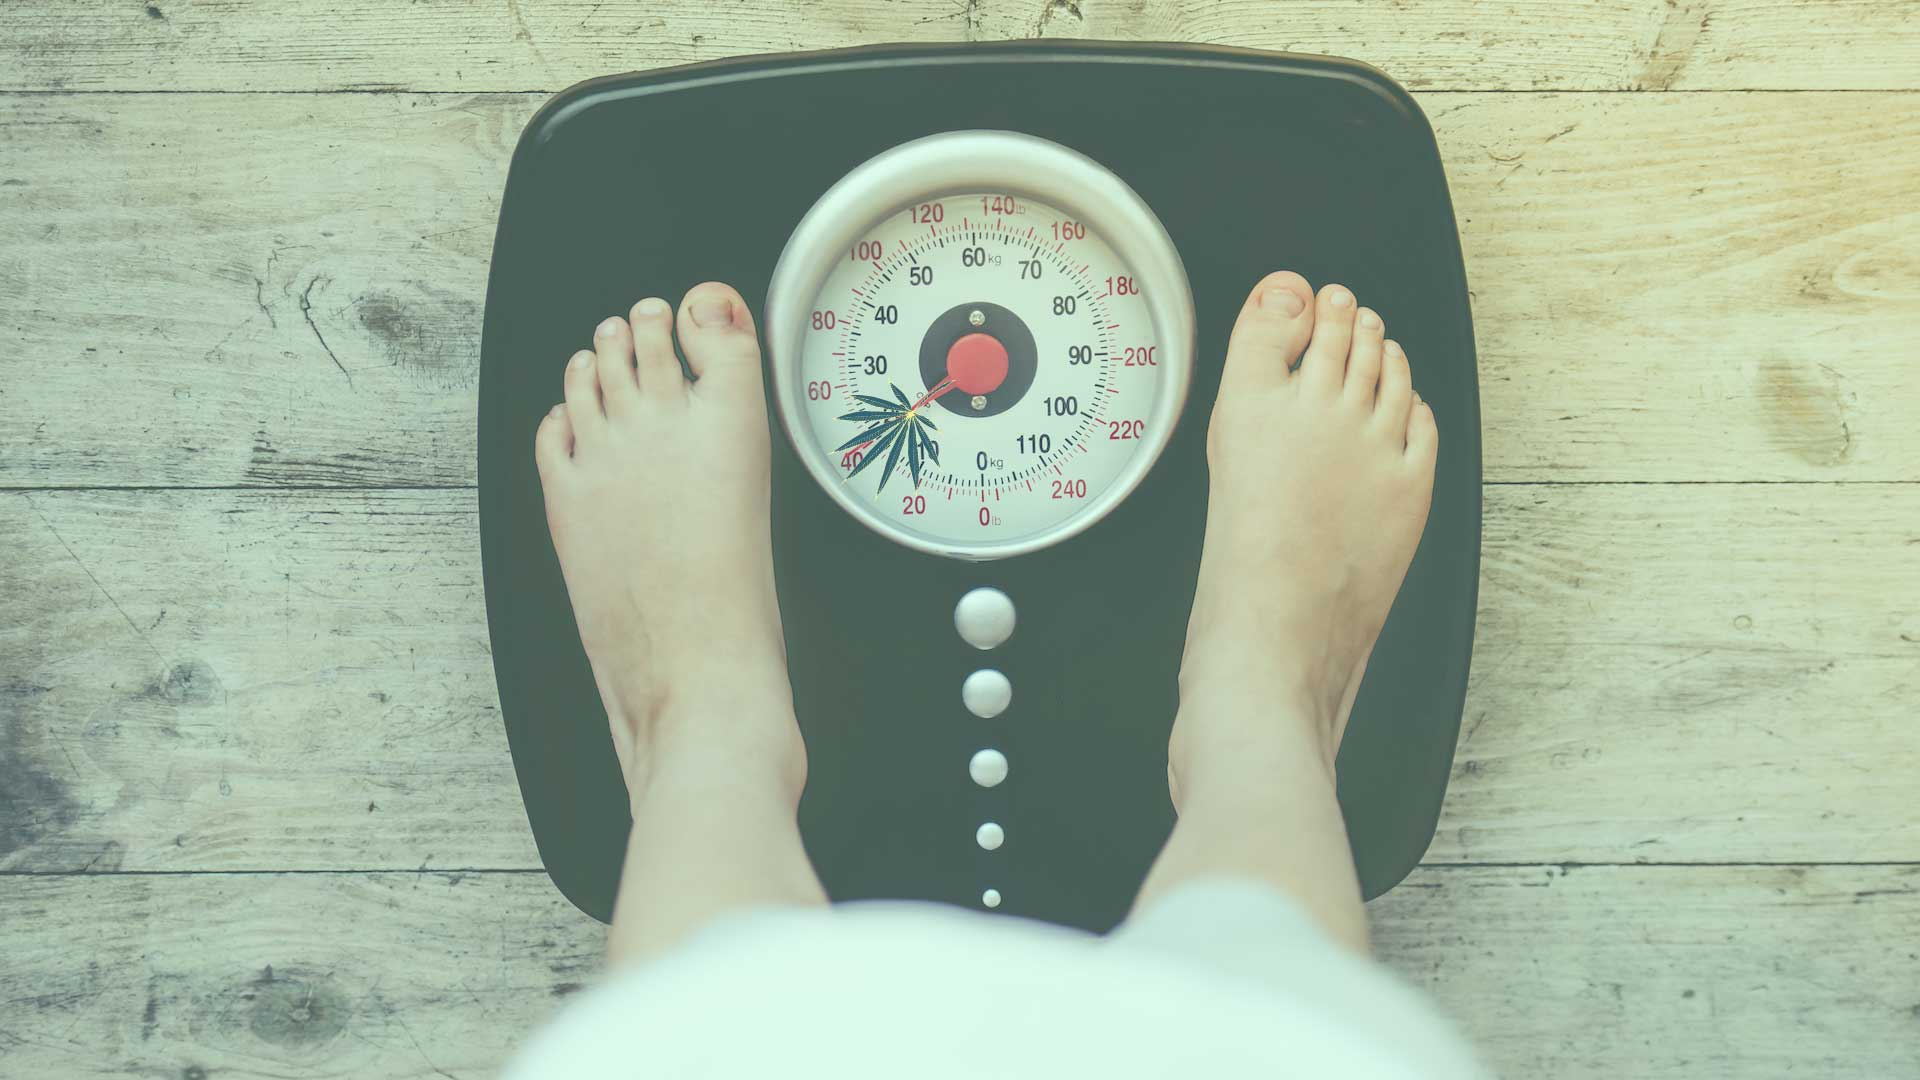 Cannabis and Weight Management: Does Weed Make You Lose Weight?